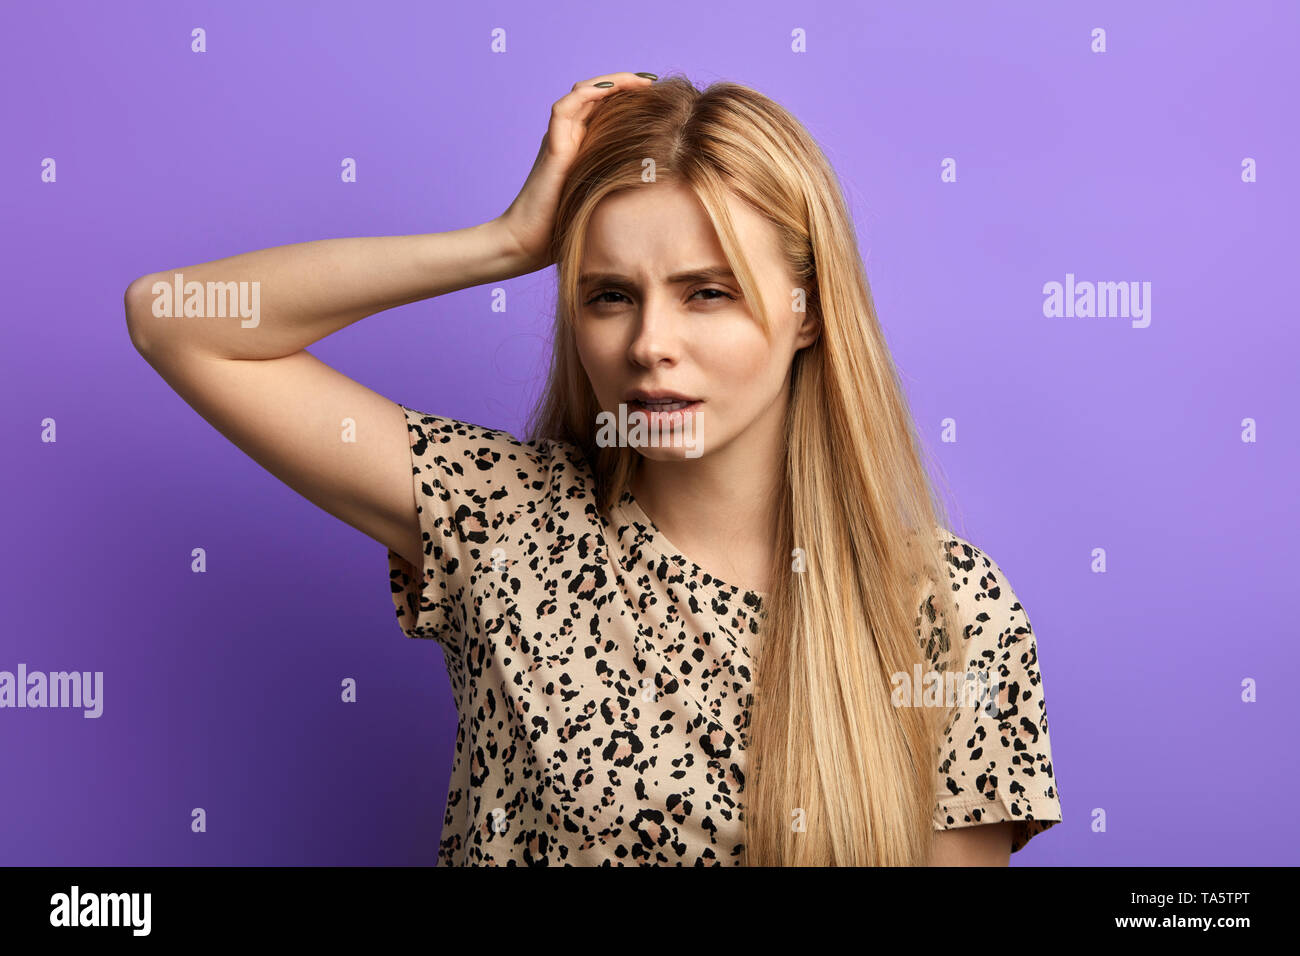 puzzled woman, scratching head, thinking, daydreaming, cannot remember some information. Human facial expressions. female student with bad memory.beau - Stock Image